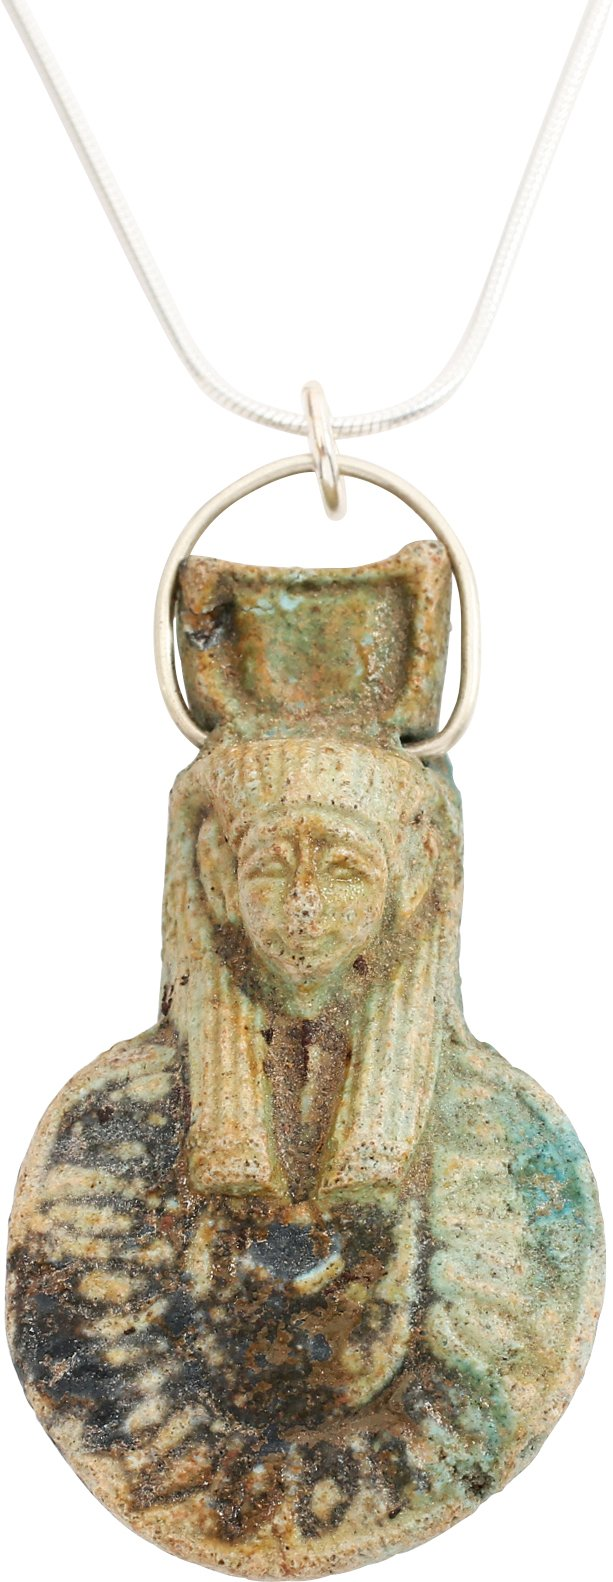 EGYPTIAN GRAND TOUR AMULET, 17th-18th CENTURY - Fagan Arms